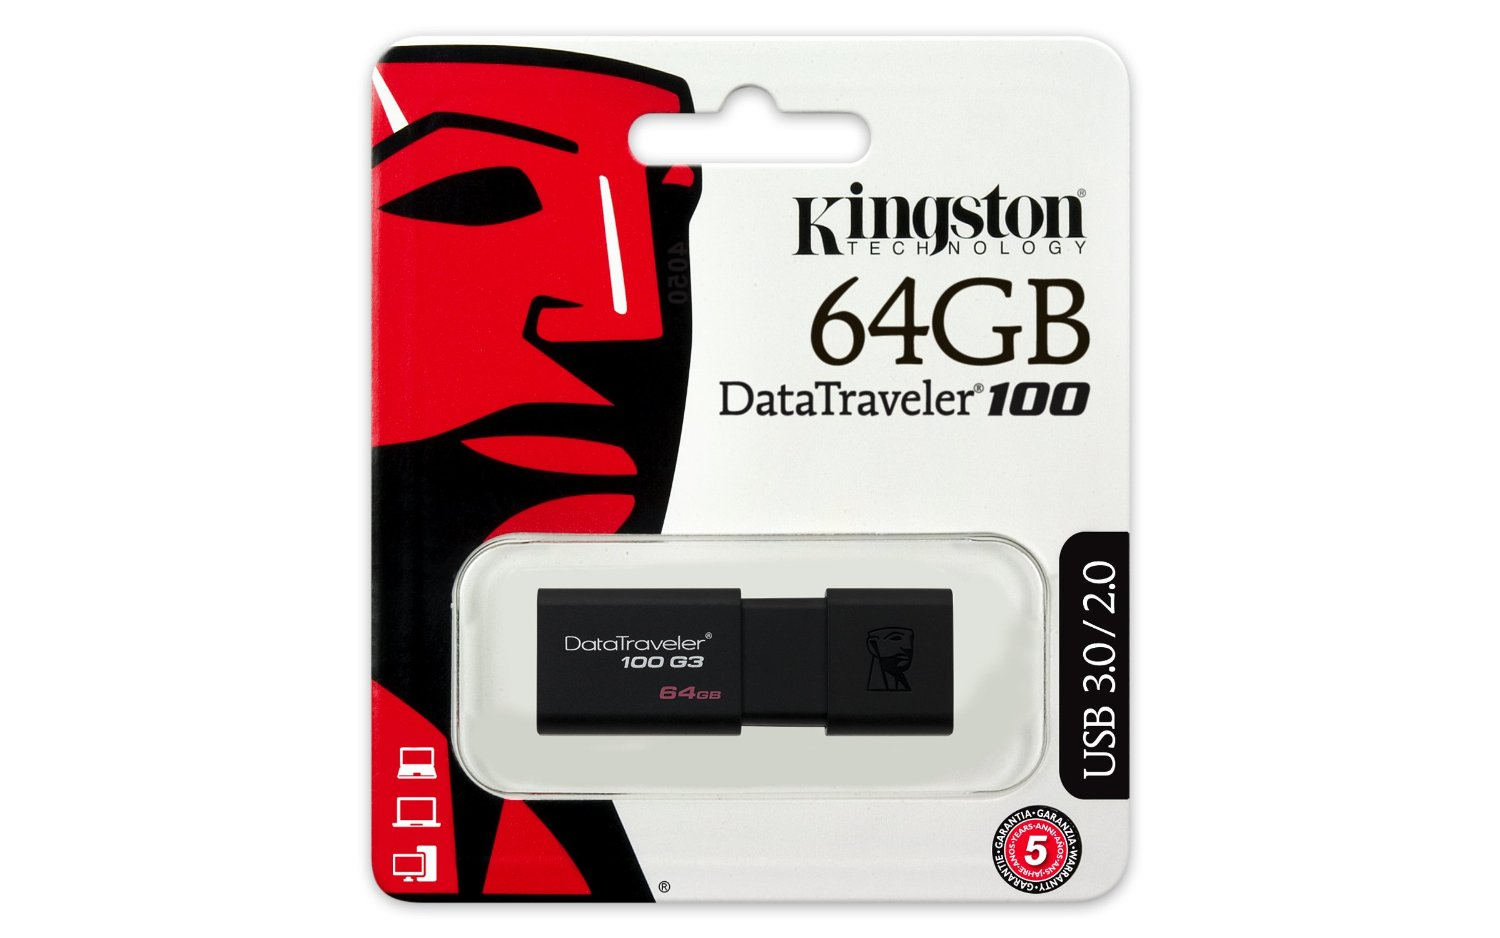 USB 64GB Kington DataTraveler 100 G3 (DT100G3/64GB)